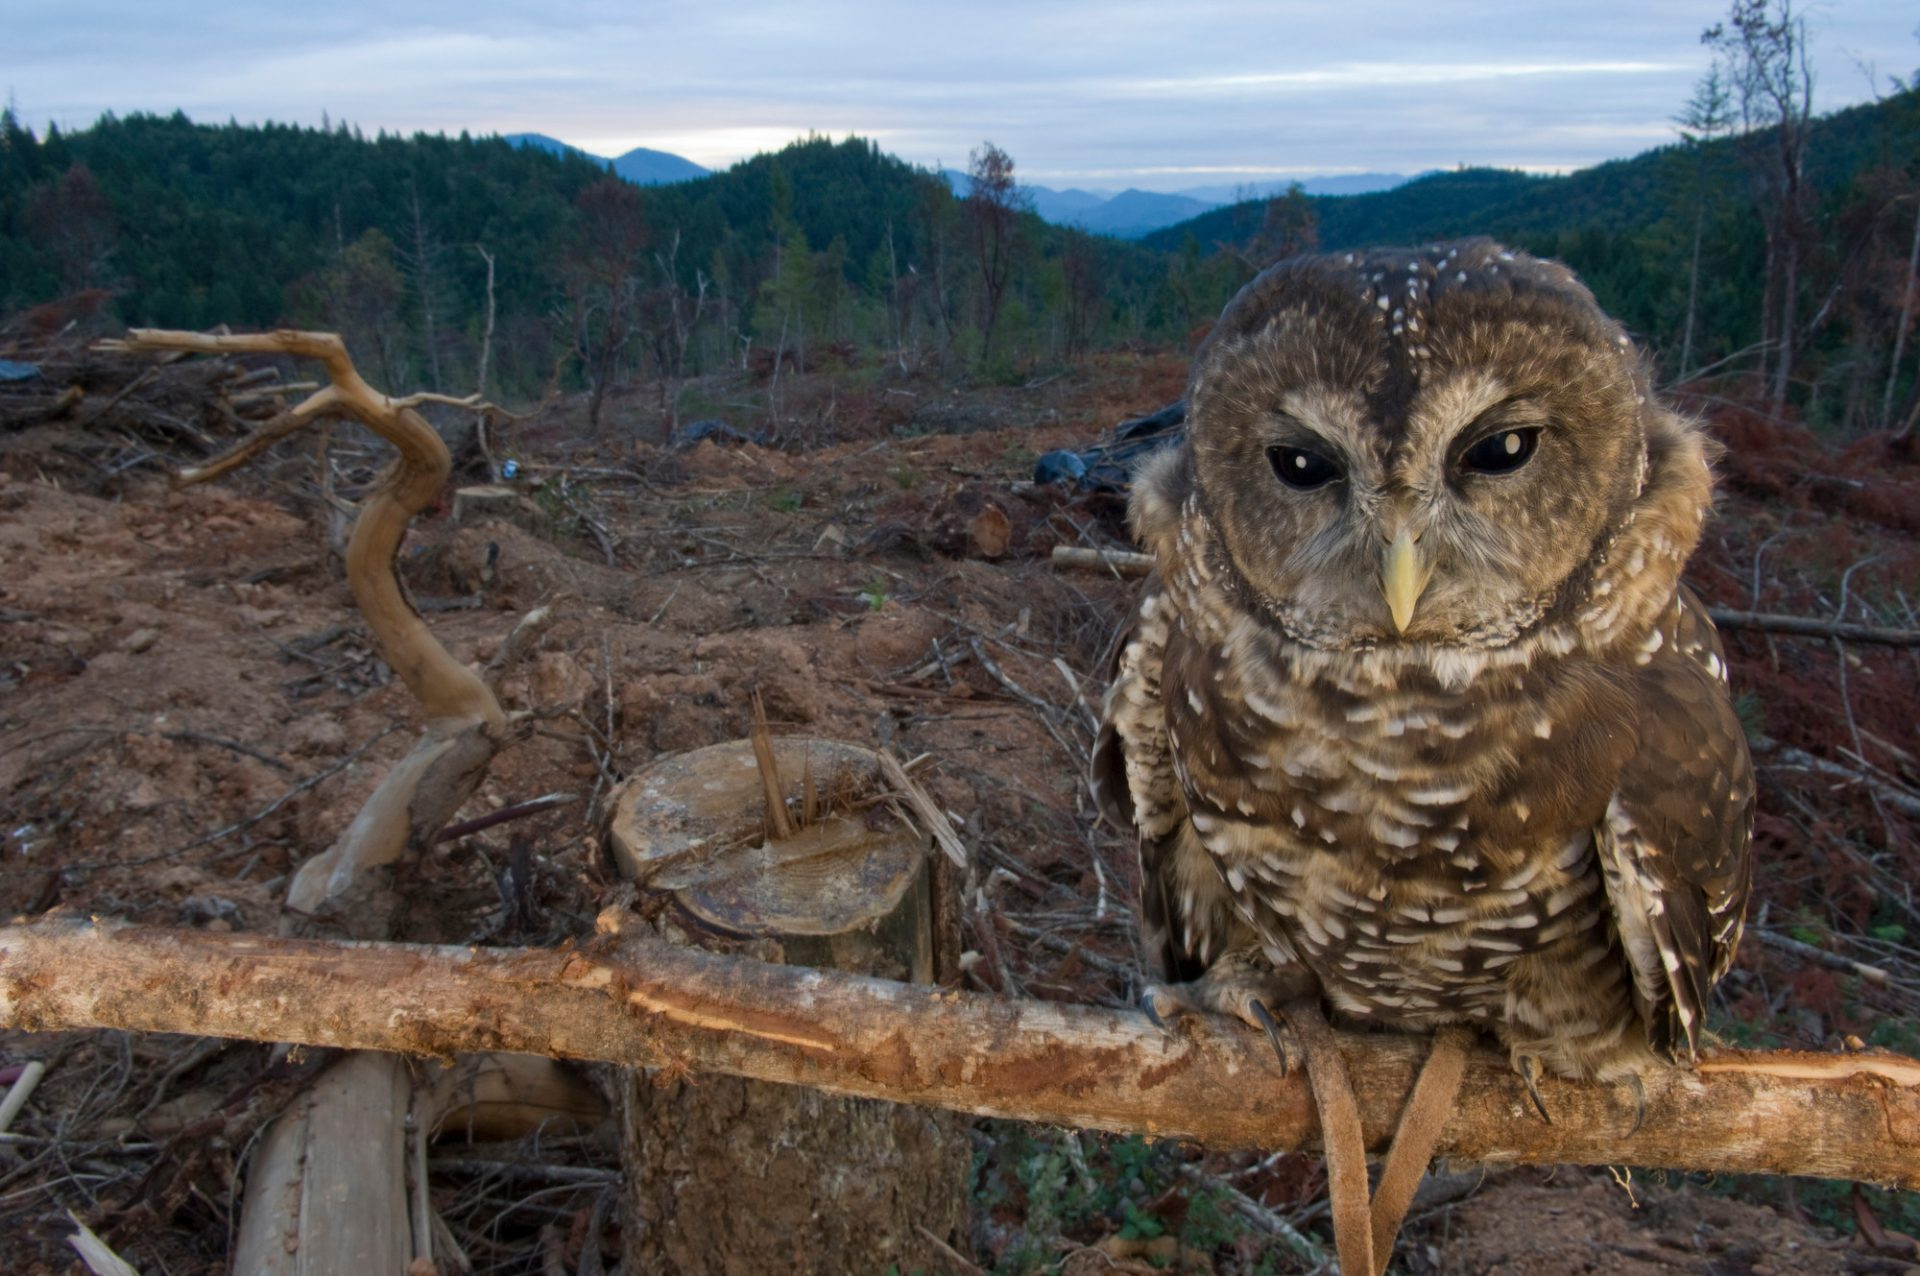 Captive northern spotted owl (Strix occidentalis caurina) in a clearcut near Merlin, Oregon. Habitat loss and climate change are the two primary factors leading to the extinction of species. (US: Threatened)